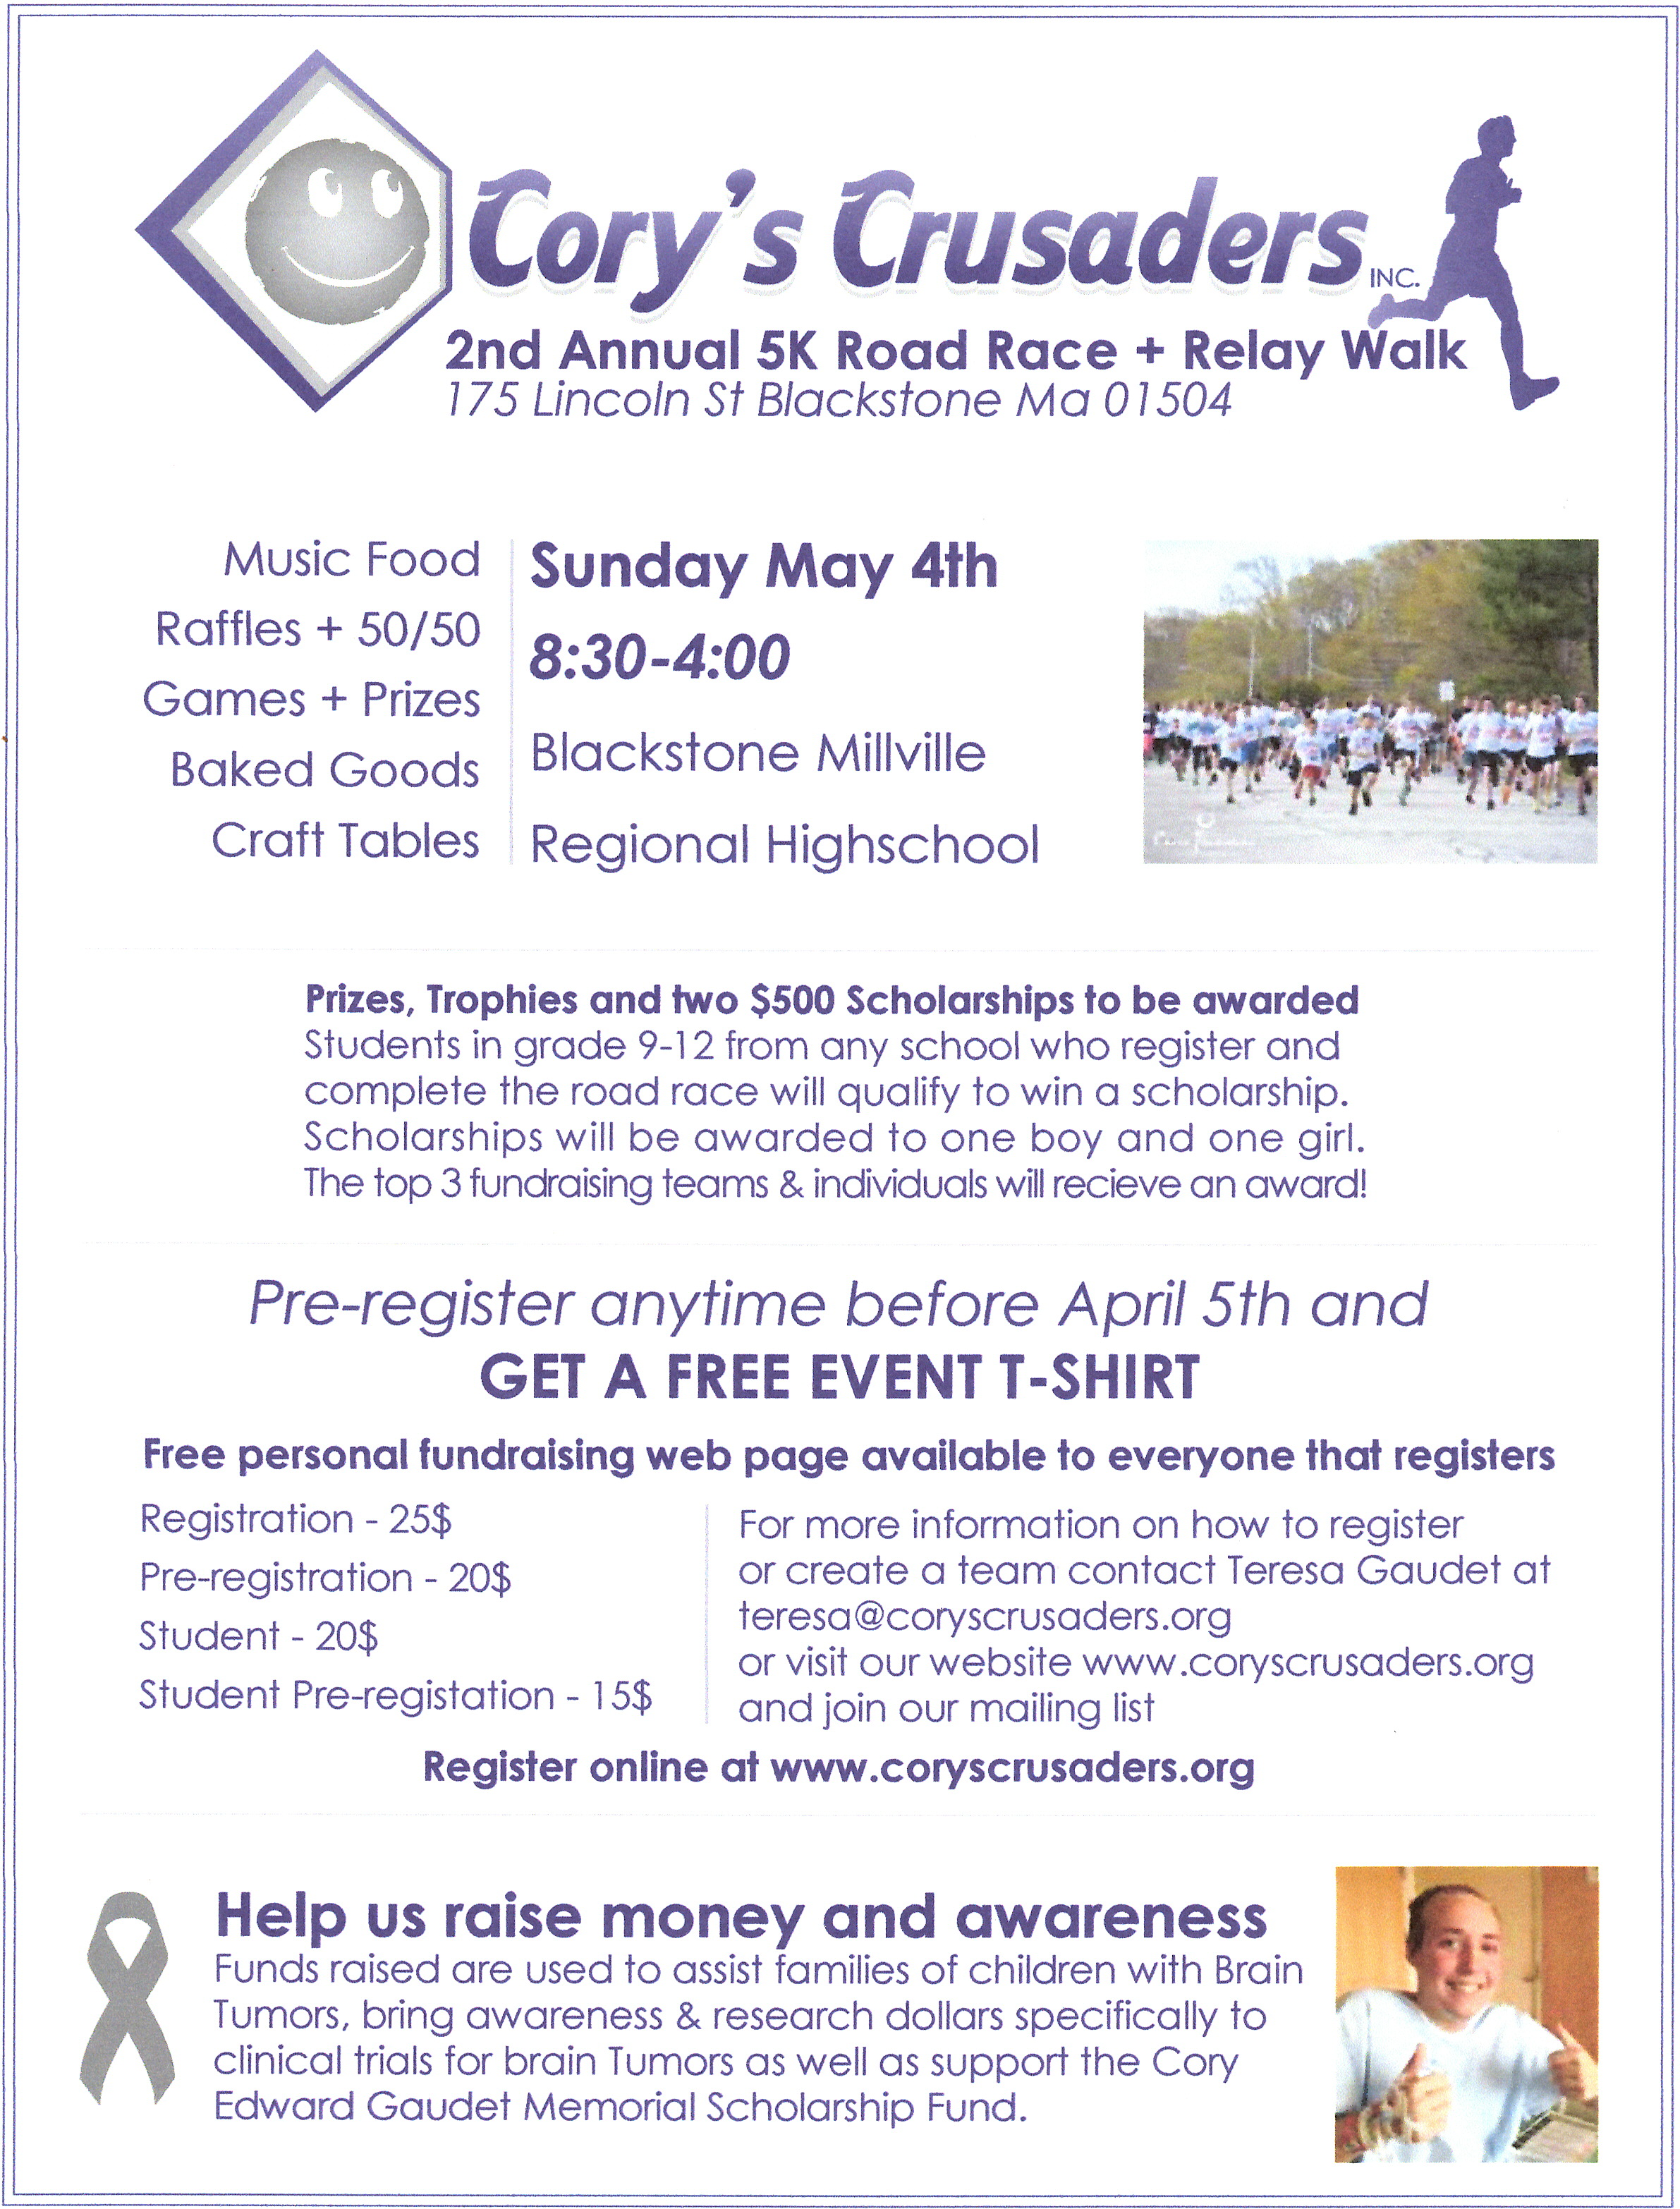 2nd Annual 5K Road Race & Relay Walk